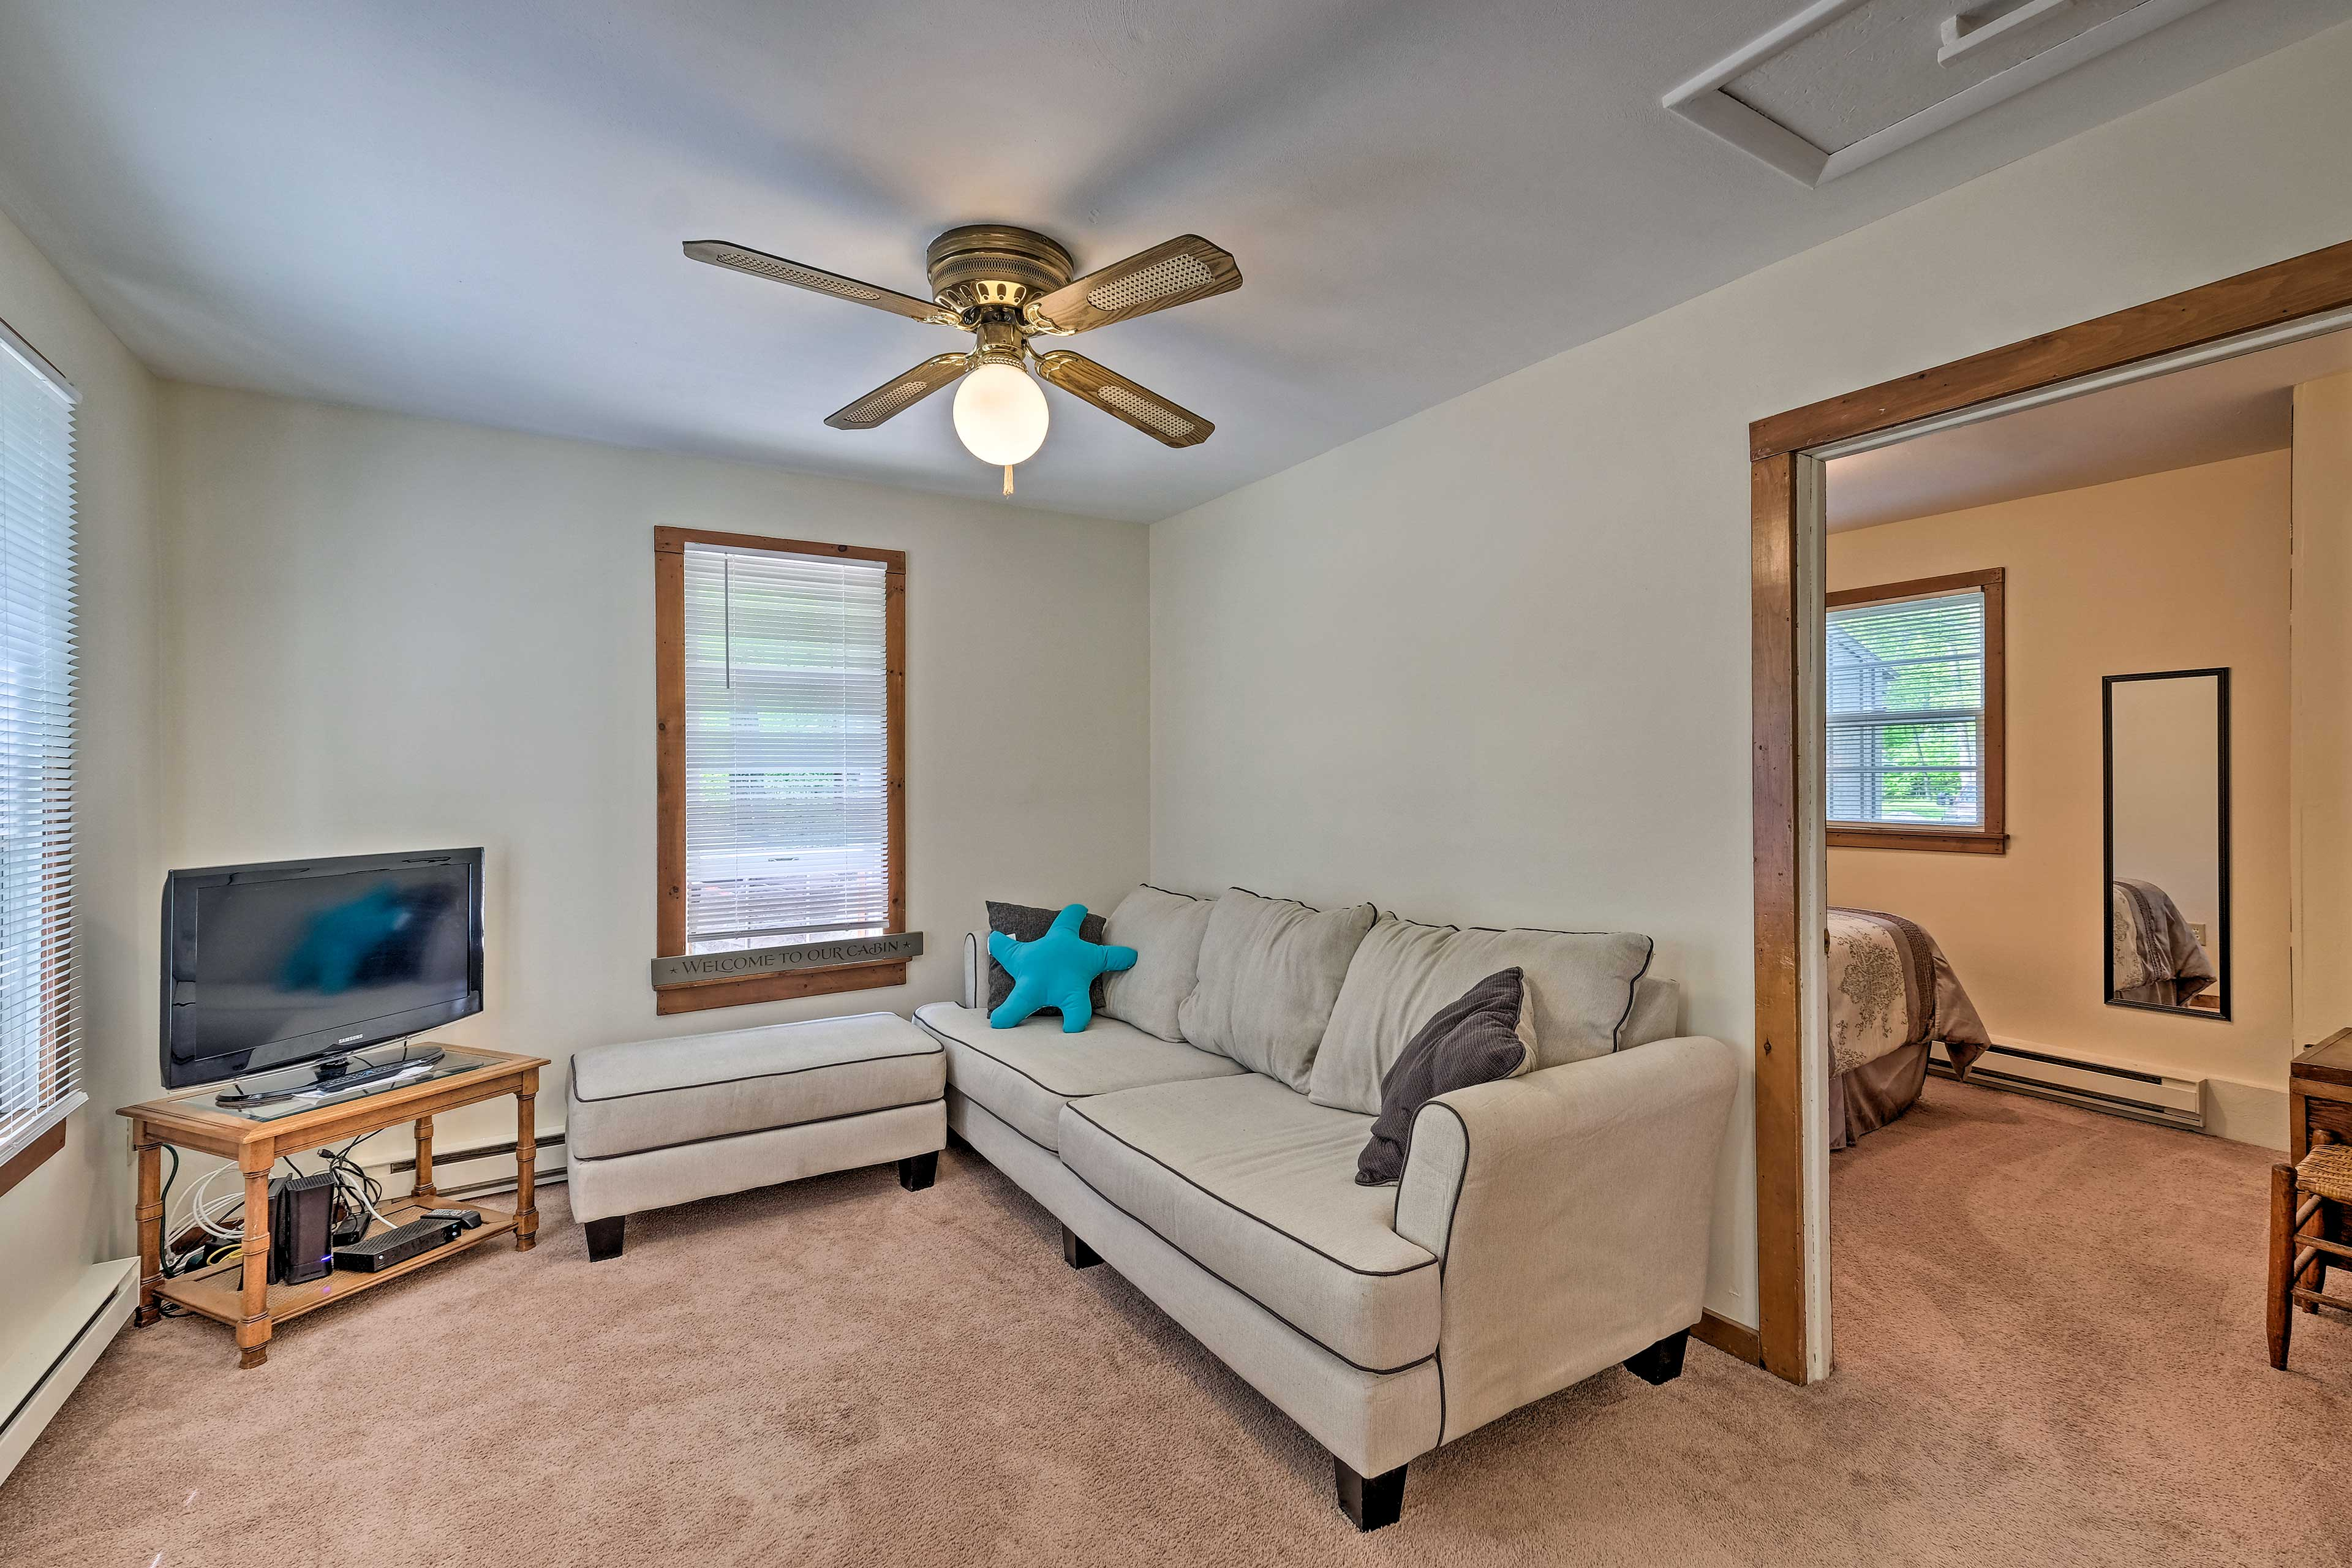 The ceiling fan will keep you cool on a hot summer day.